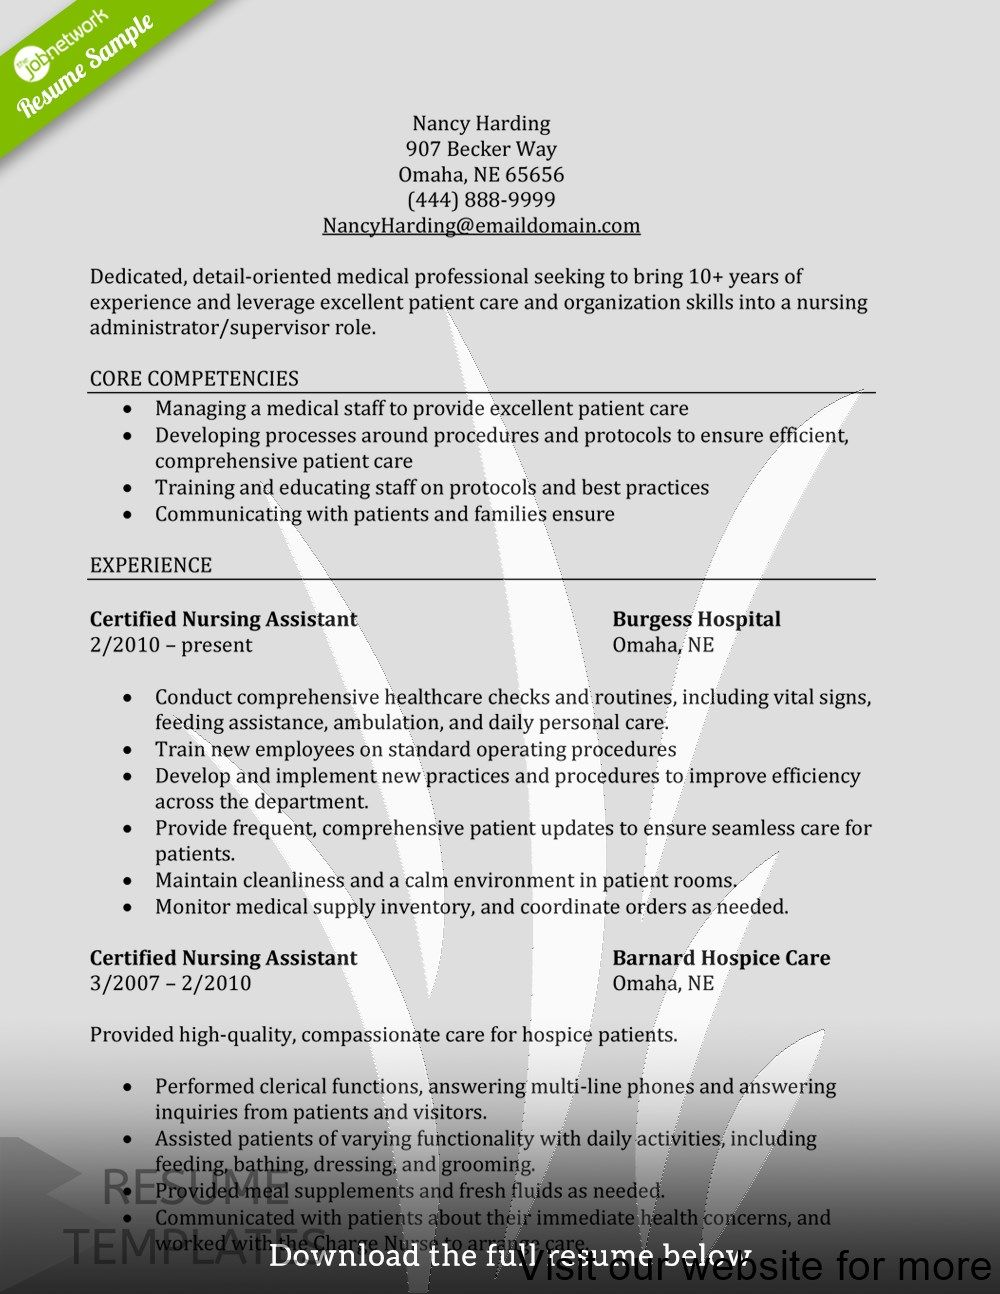 resume template best free Professional in 2020 Resume